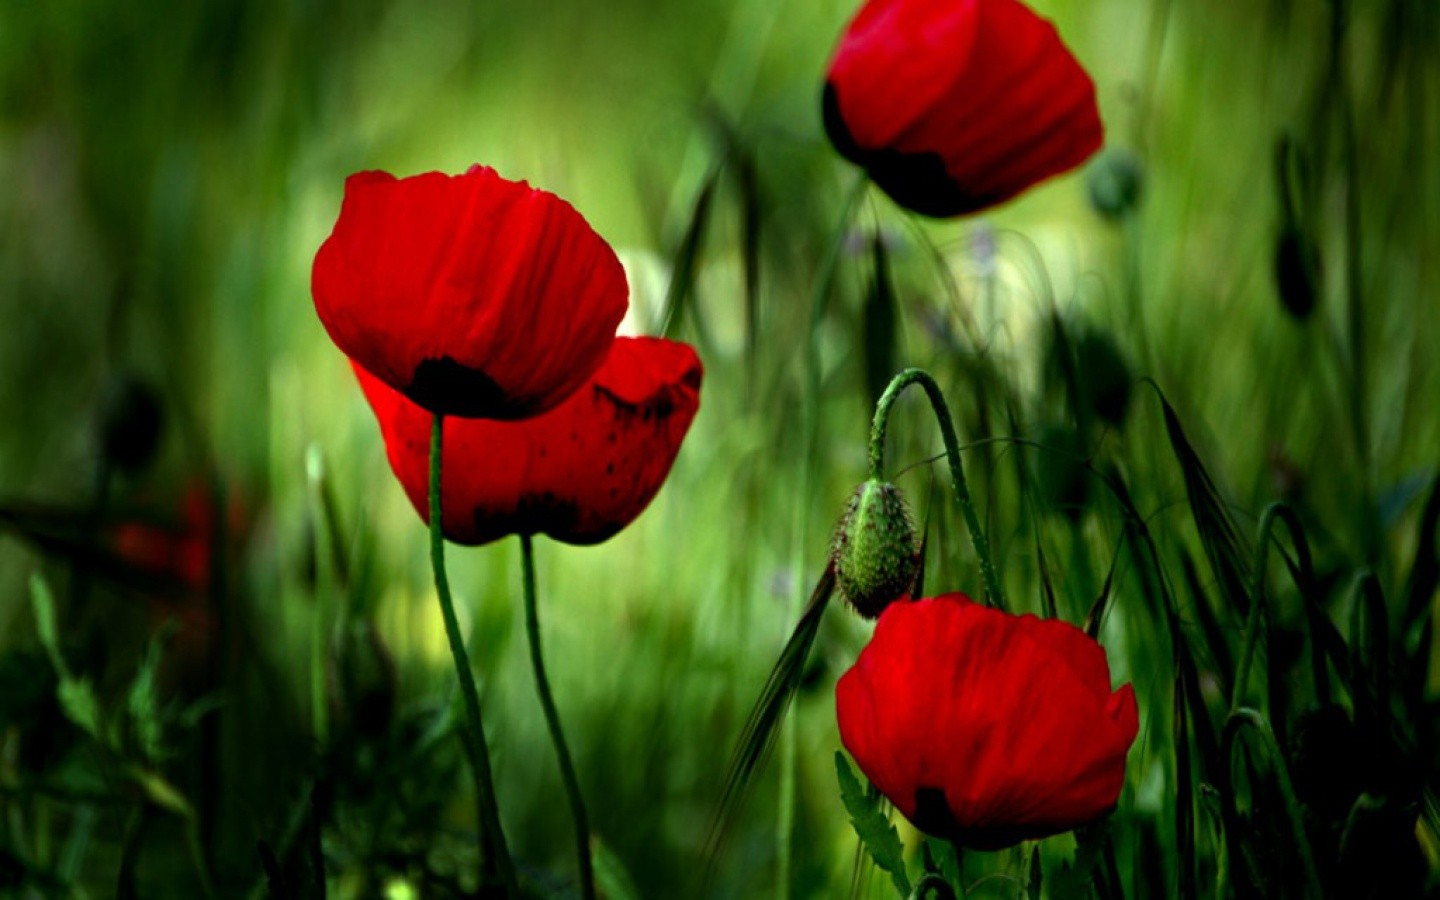 Poppy Flowers Wallpaper Pictures Wallpapersafari